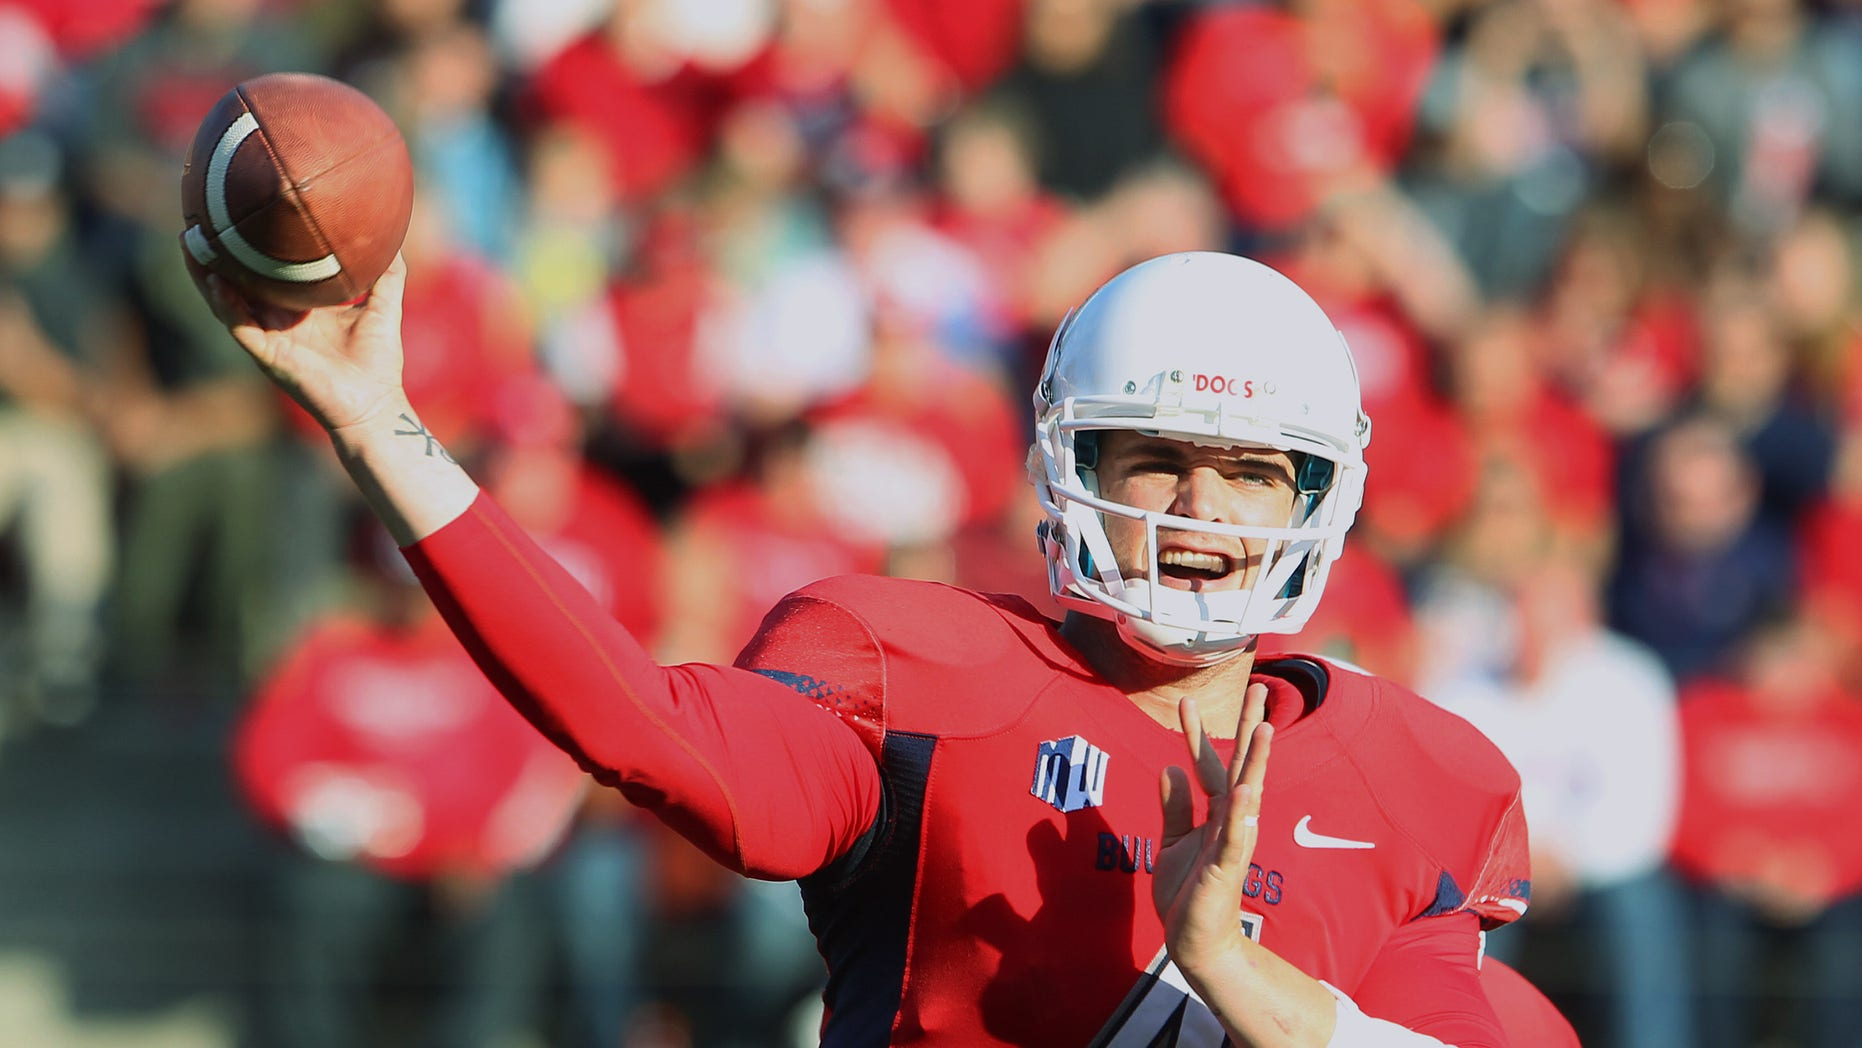 Derek Carr throws a pass against New Mexico on his way to 527 yards in the first half of an NCAA college football game in Fresno, Calif., Saturday, Nov. 23, 2013. (AP Photo/Gary Kazanjian)